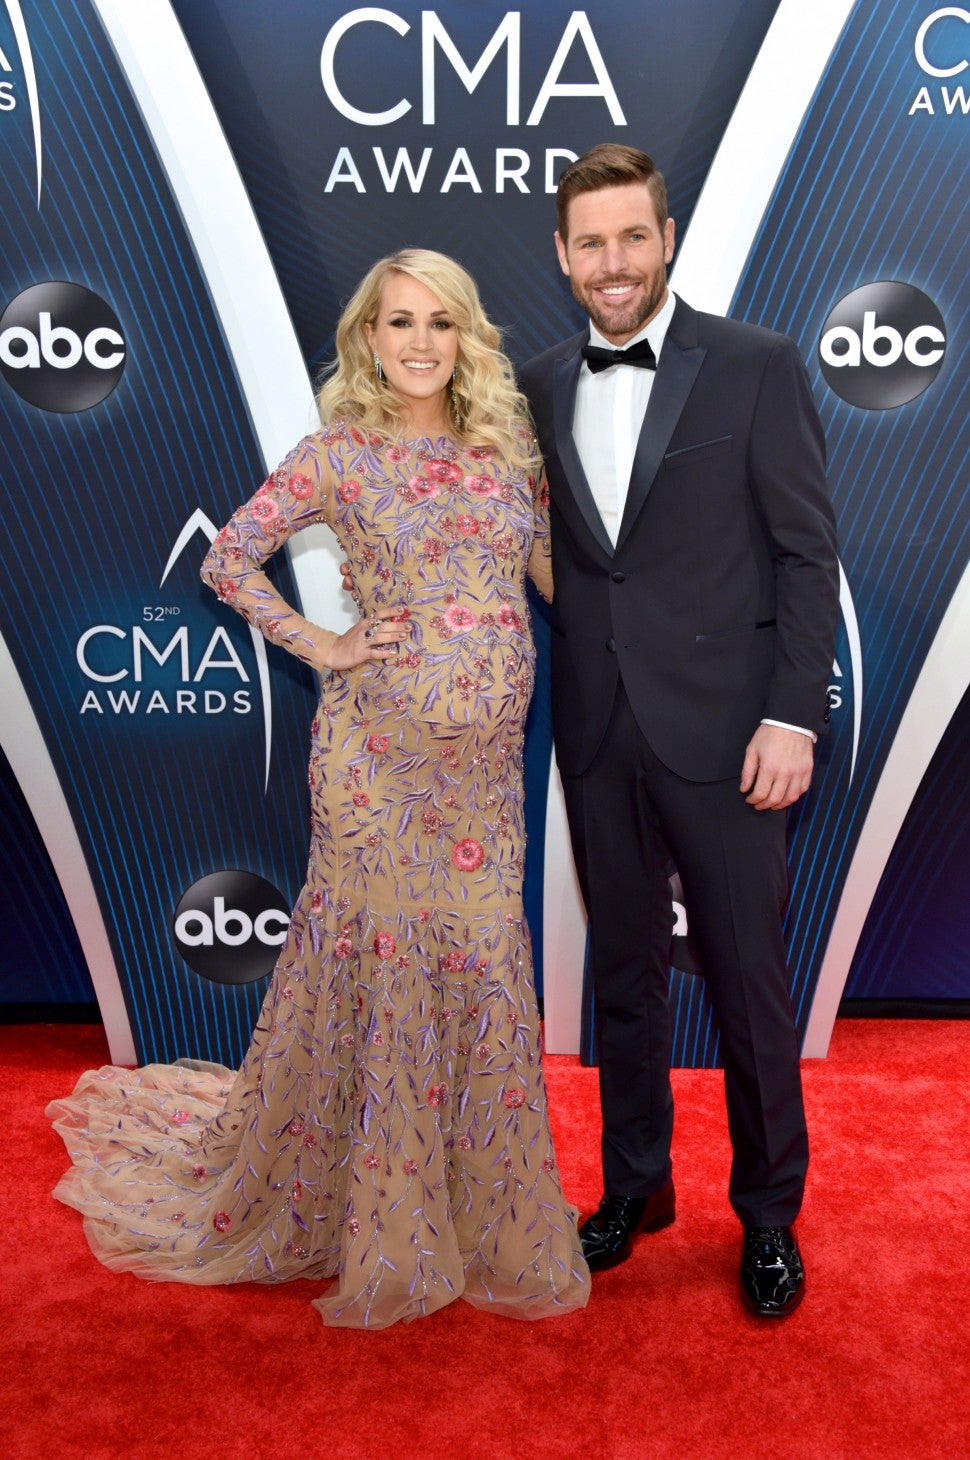 Carrie Underwood and Mike Fisher CMA Awards 2018